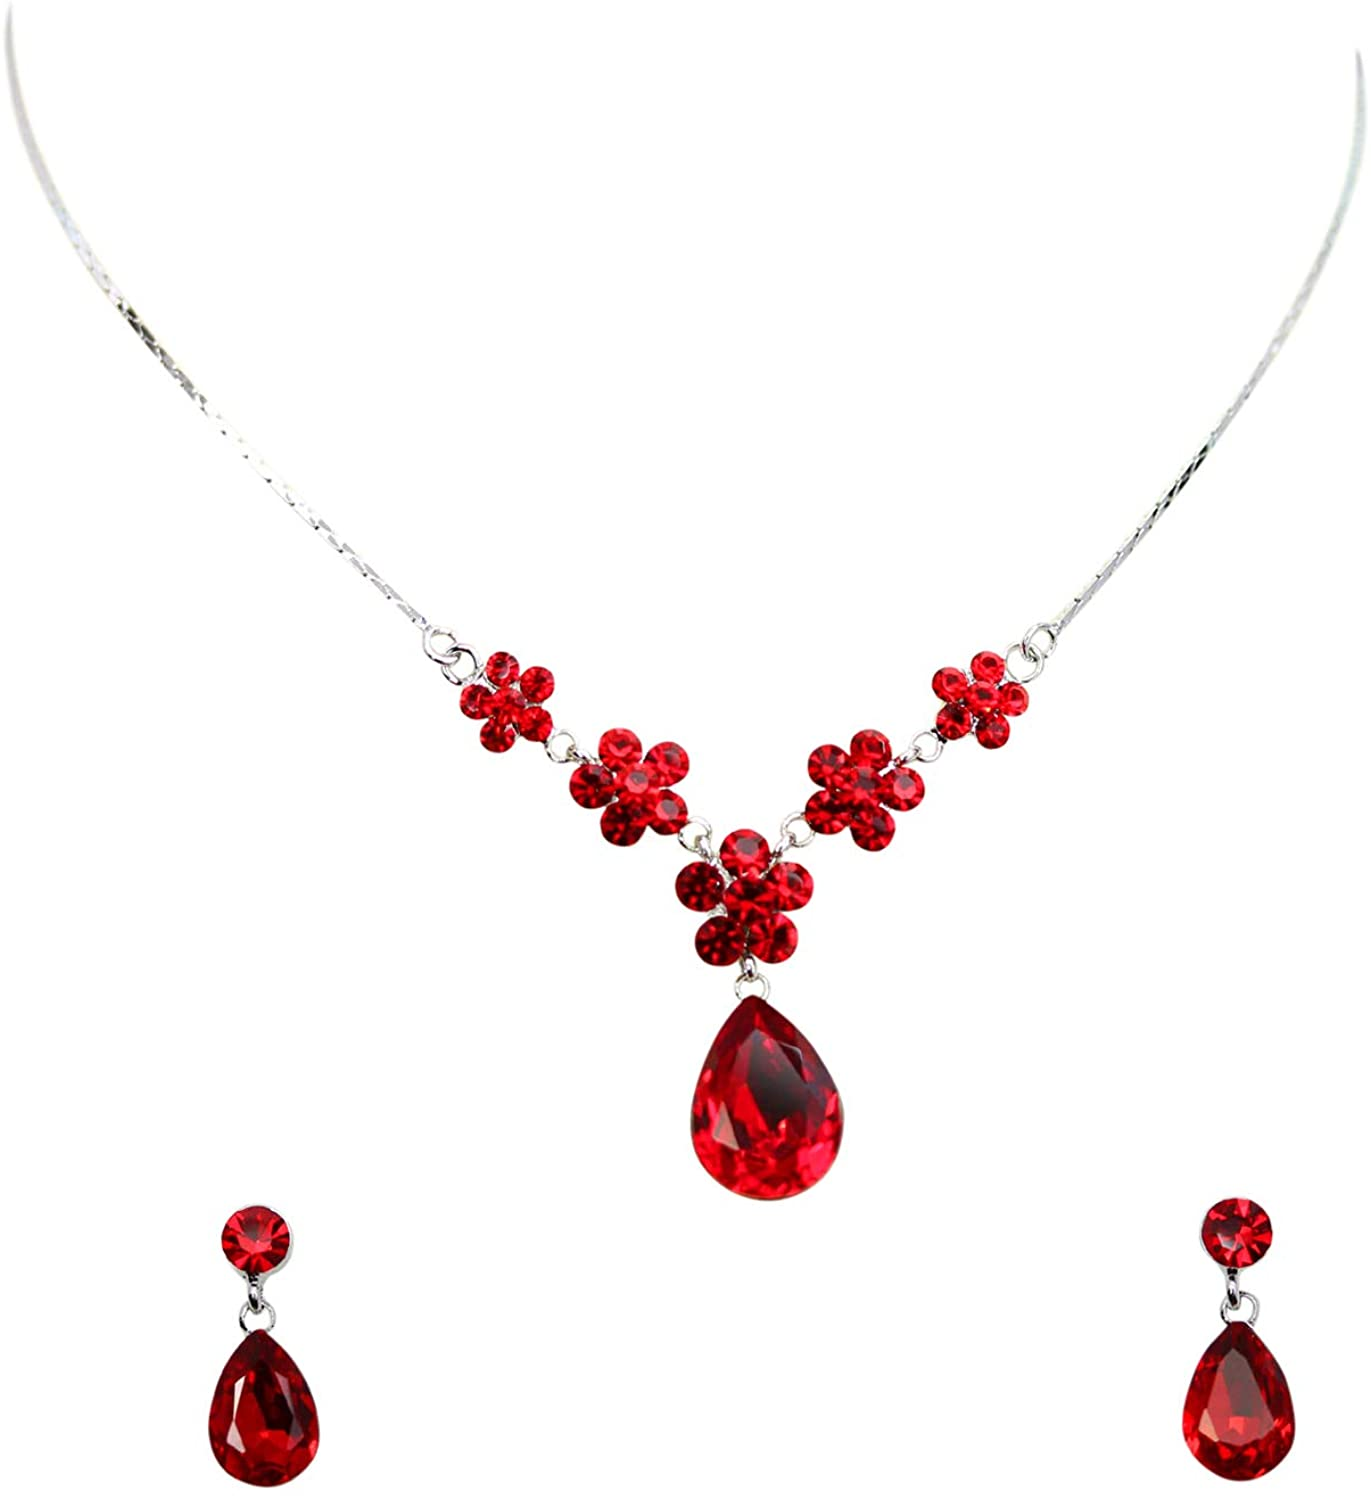 Faship Gorgeous Rhinestone Crystal Floral Necklace Earrings Set